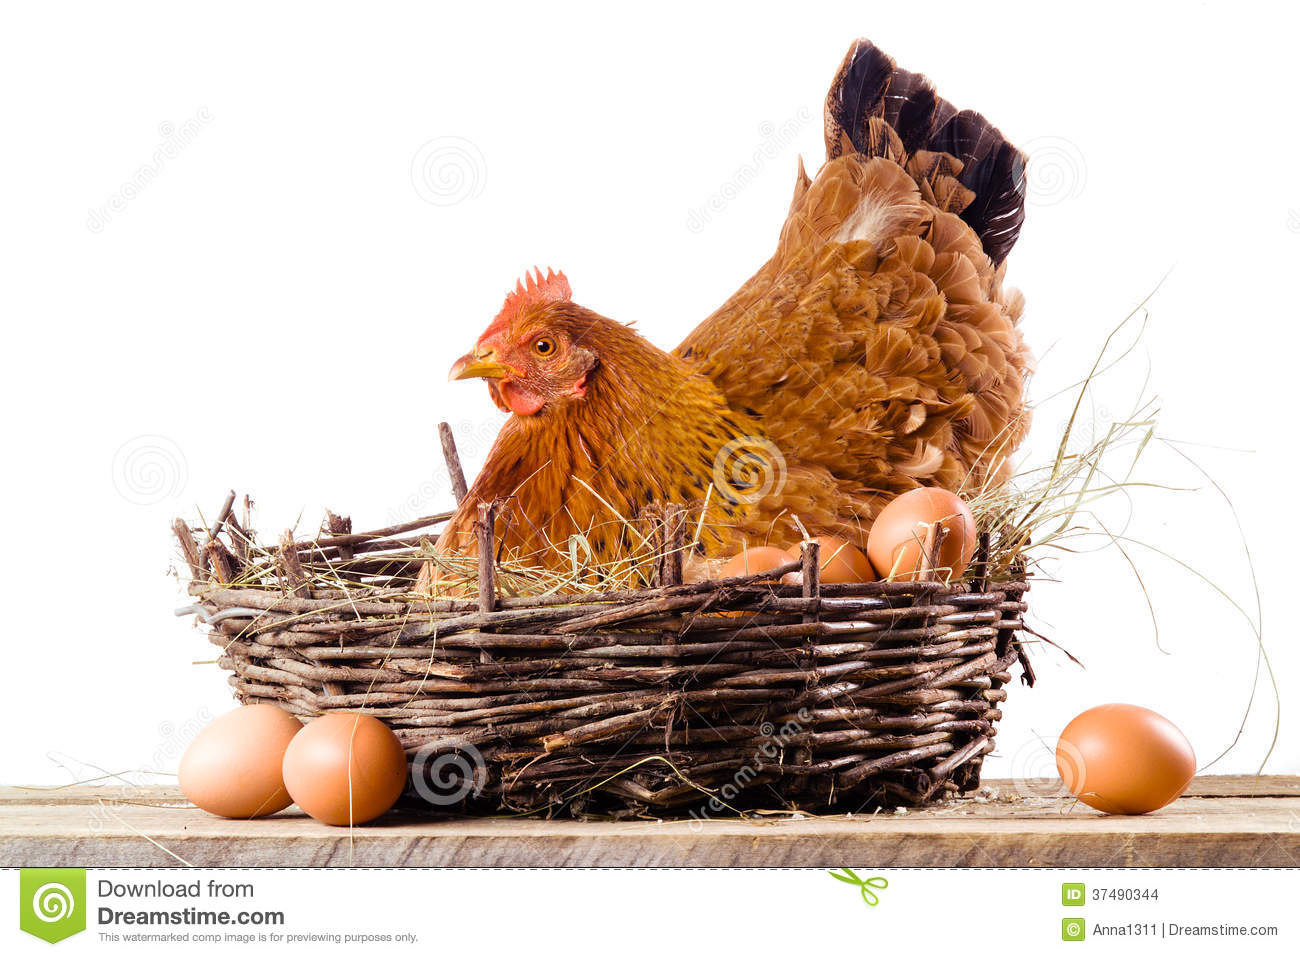 Chicken Nest Cartoon Cartoondealer